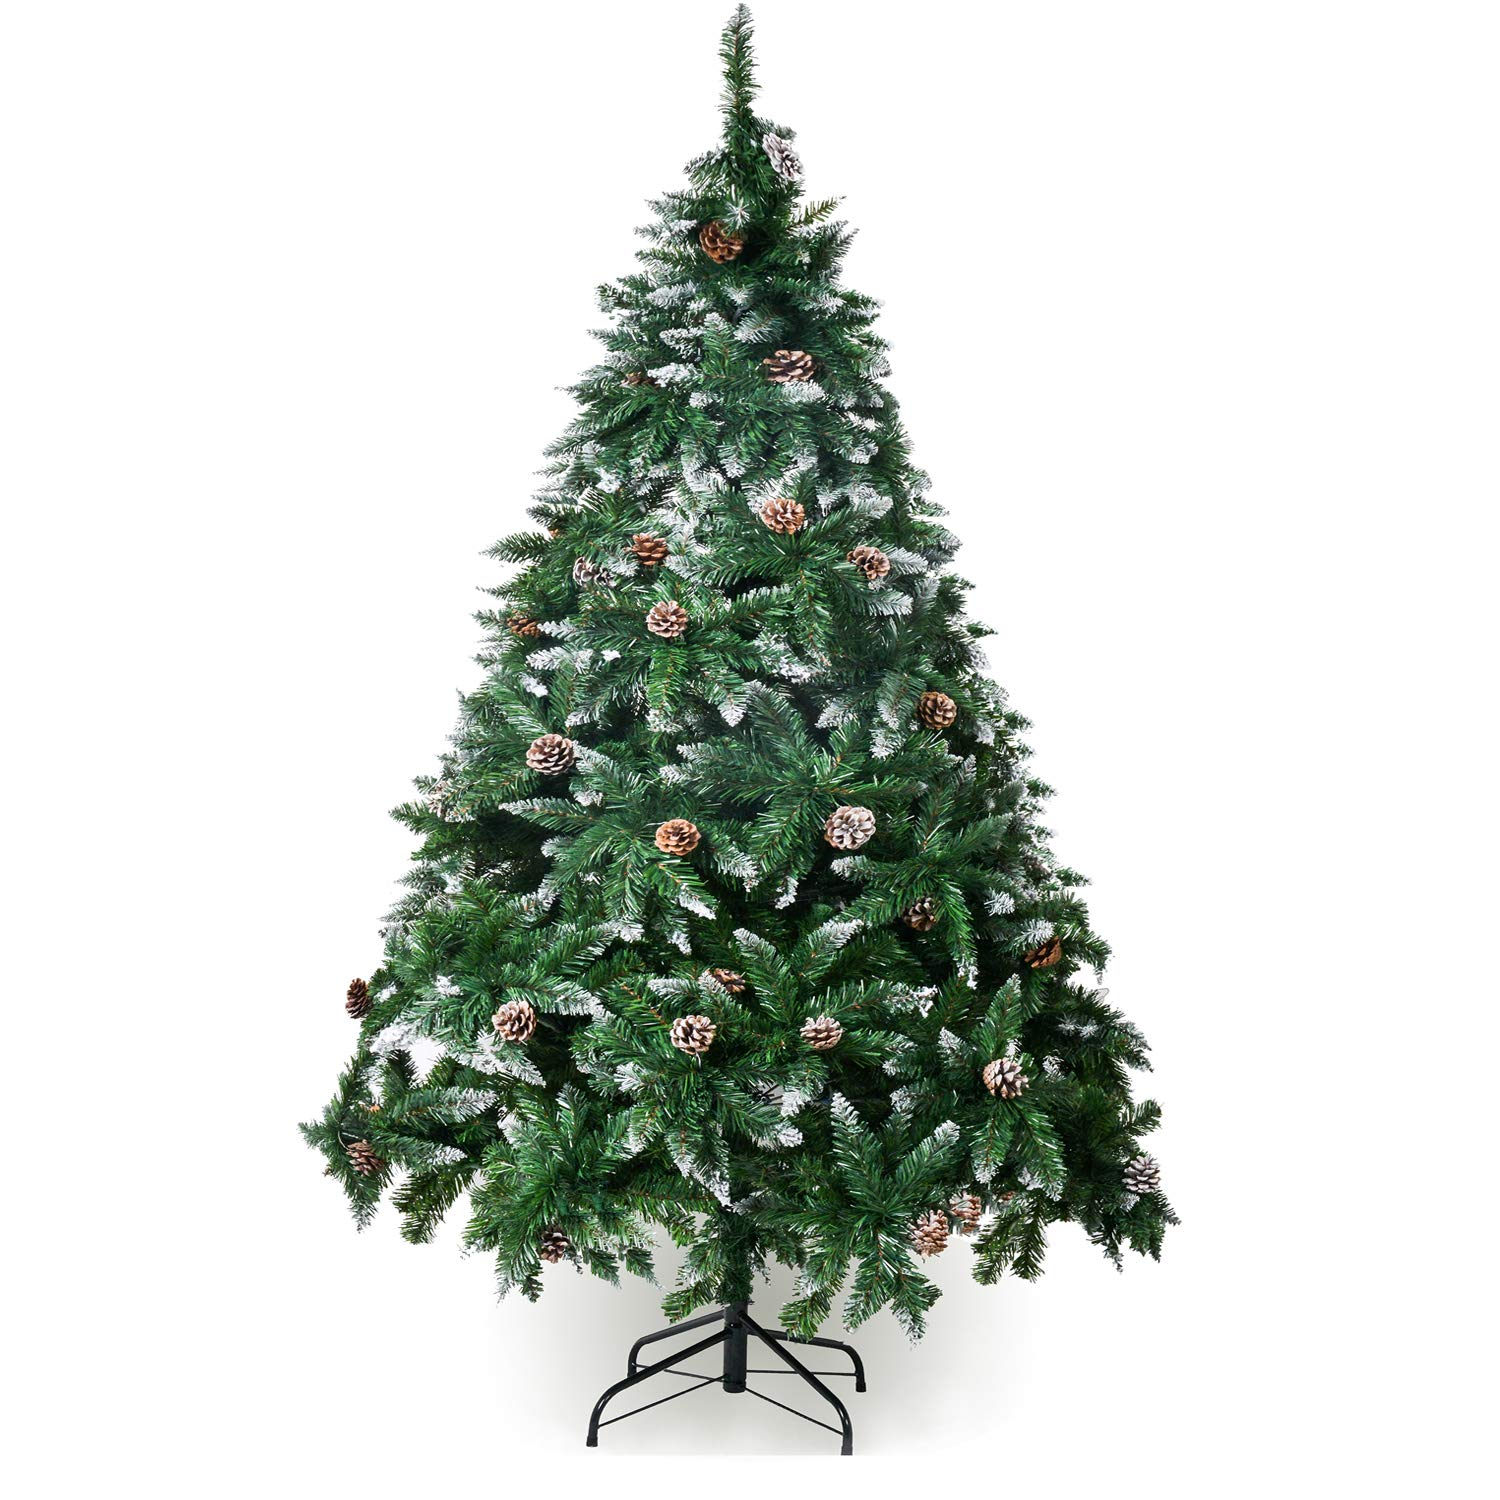 Winregh 4,5,6,7.5 Foot Artificial Christmas Tree Snow Flocked Hinged Pine Cone Decoration Unlit(7.5 Foot)